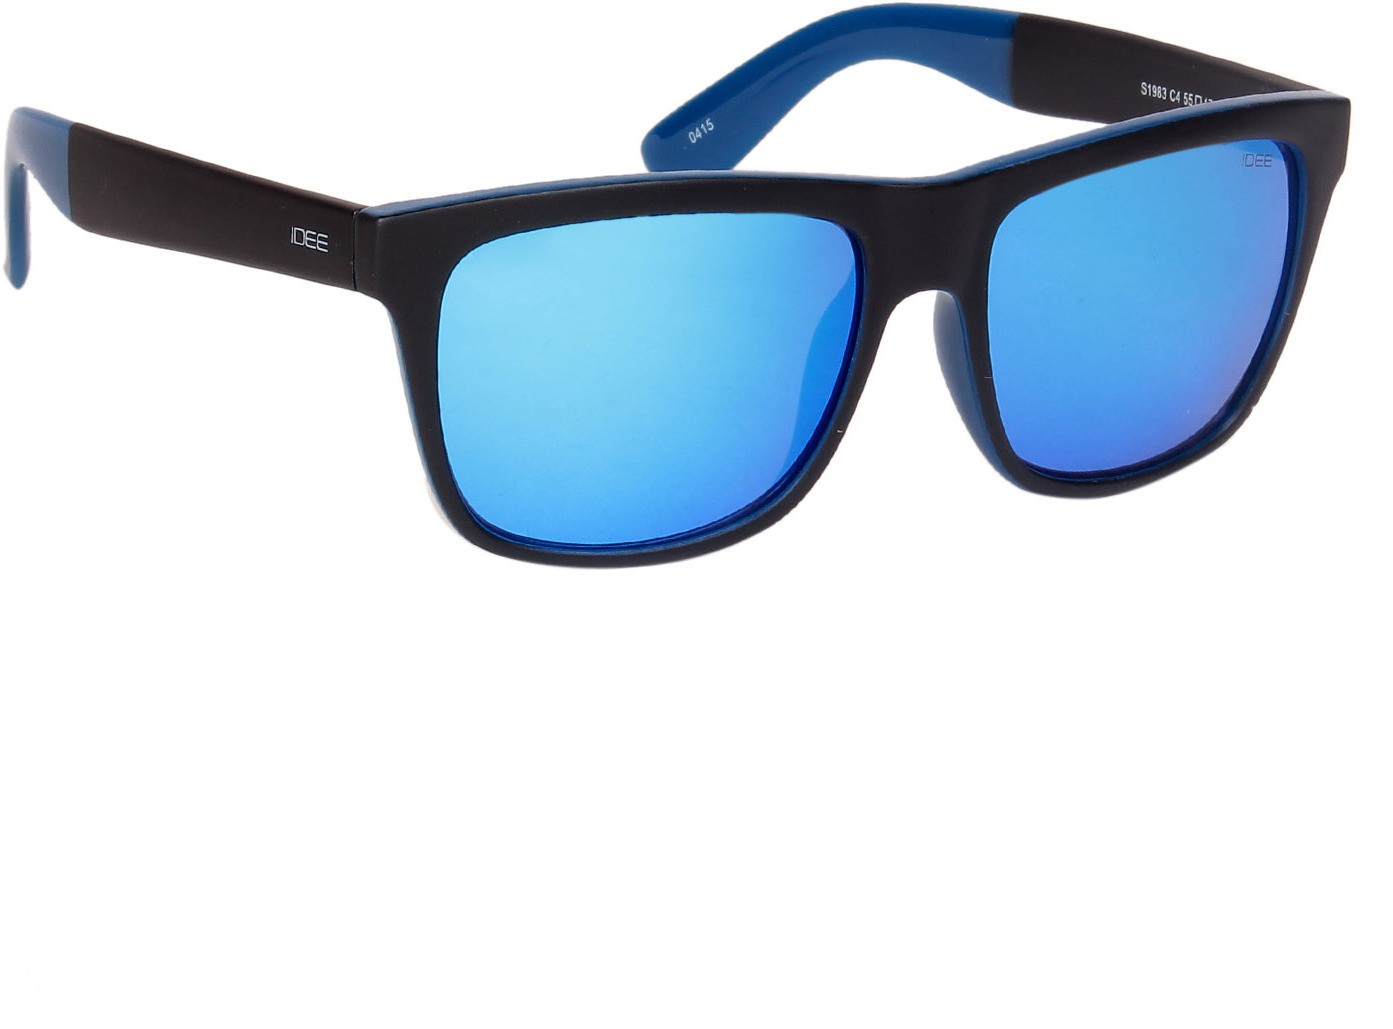 Deals - Delhi - Trend Alert <br> Reflector Sunglasses<br> Category - sunglasses<br> Business - Flipkart.com